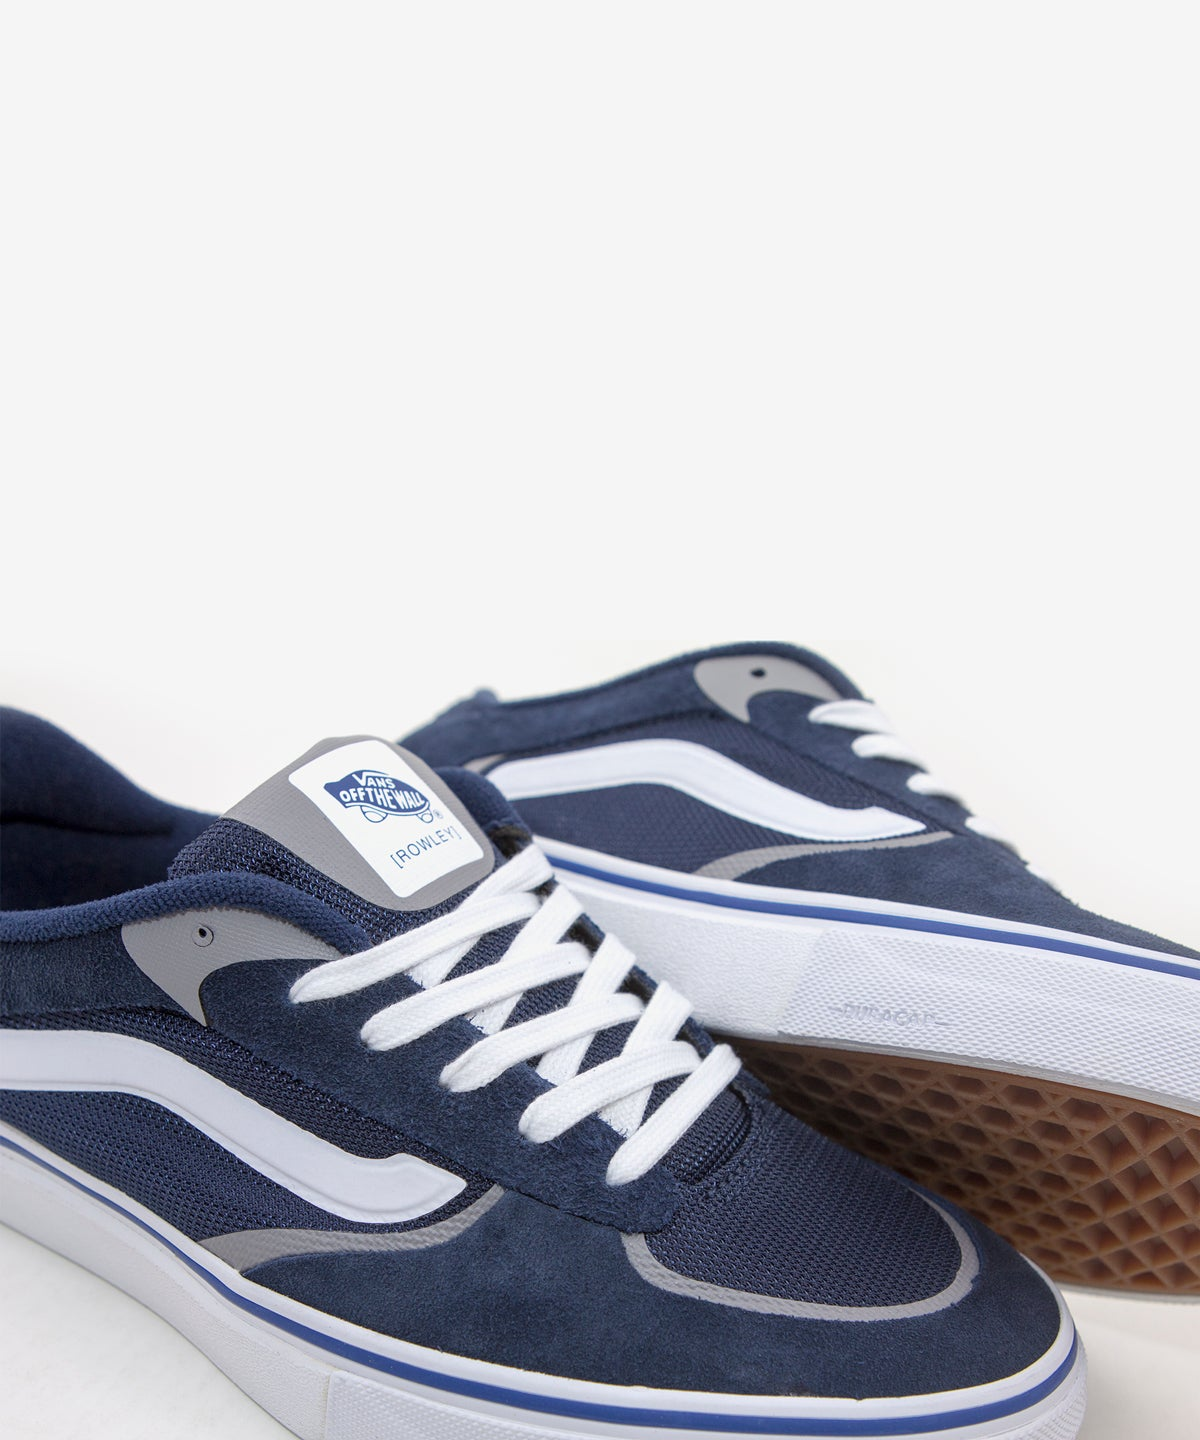 Image of VANS_ROWLEY RAPIDWELD PRO :::NAVY/WHITE:::